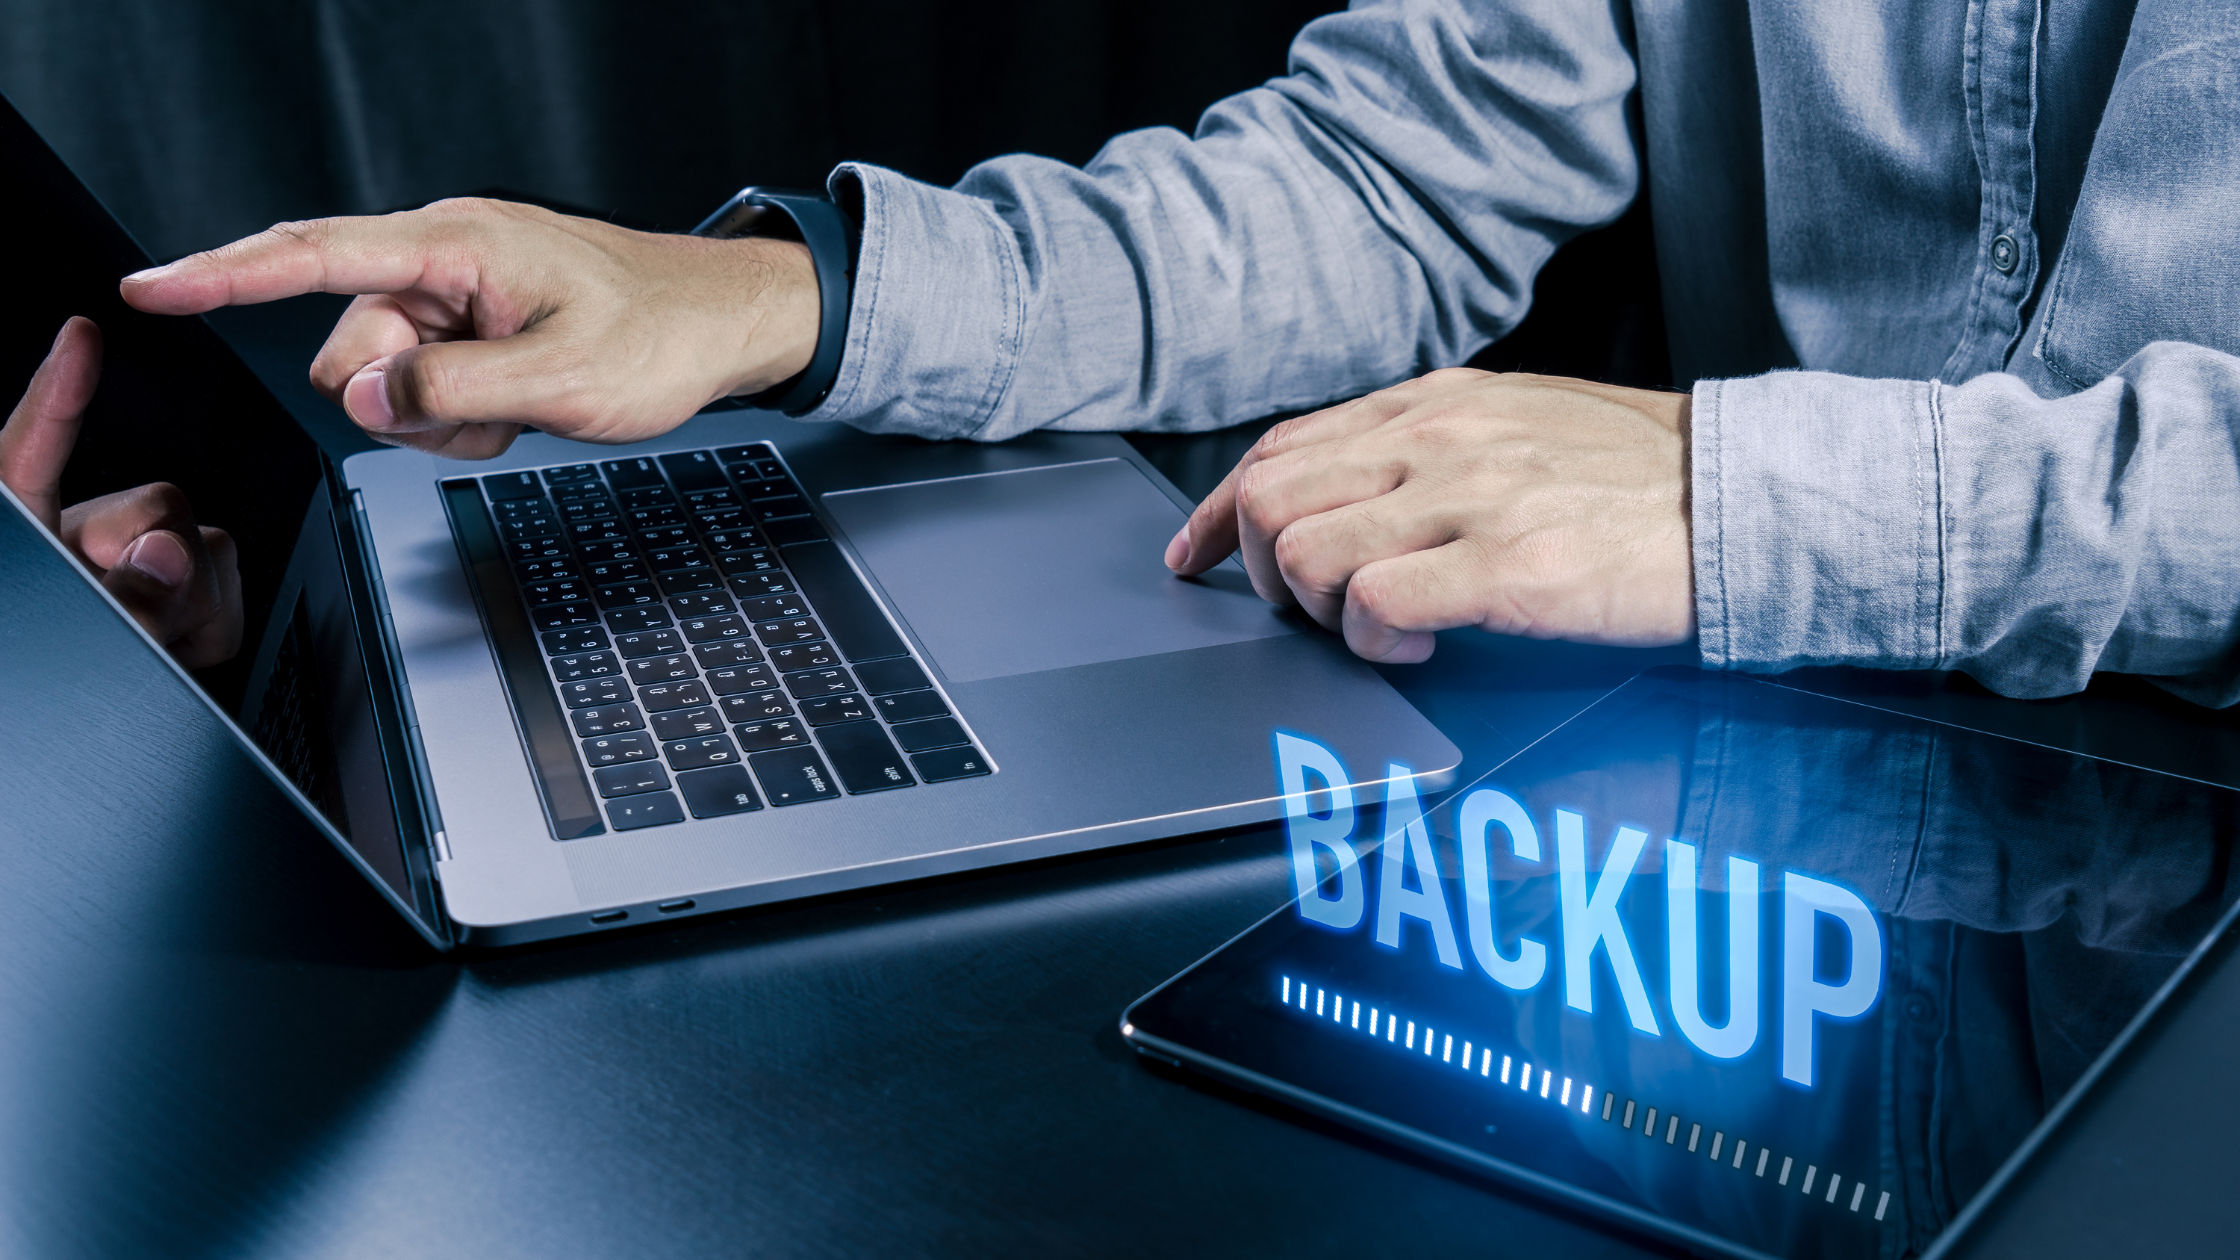 What are you doing for backups when working from home?